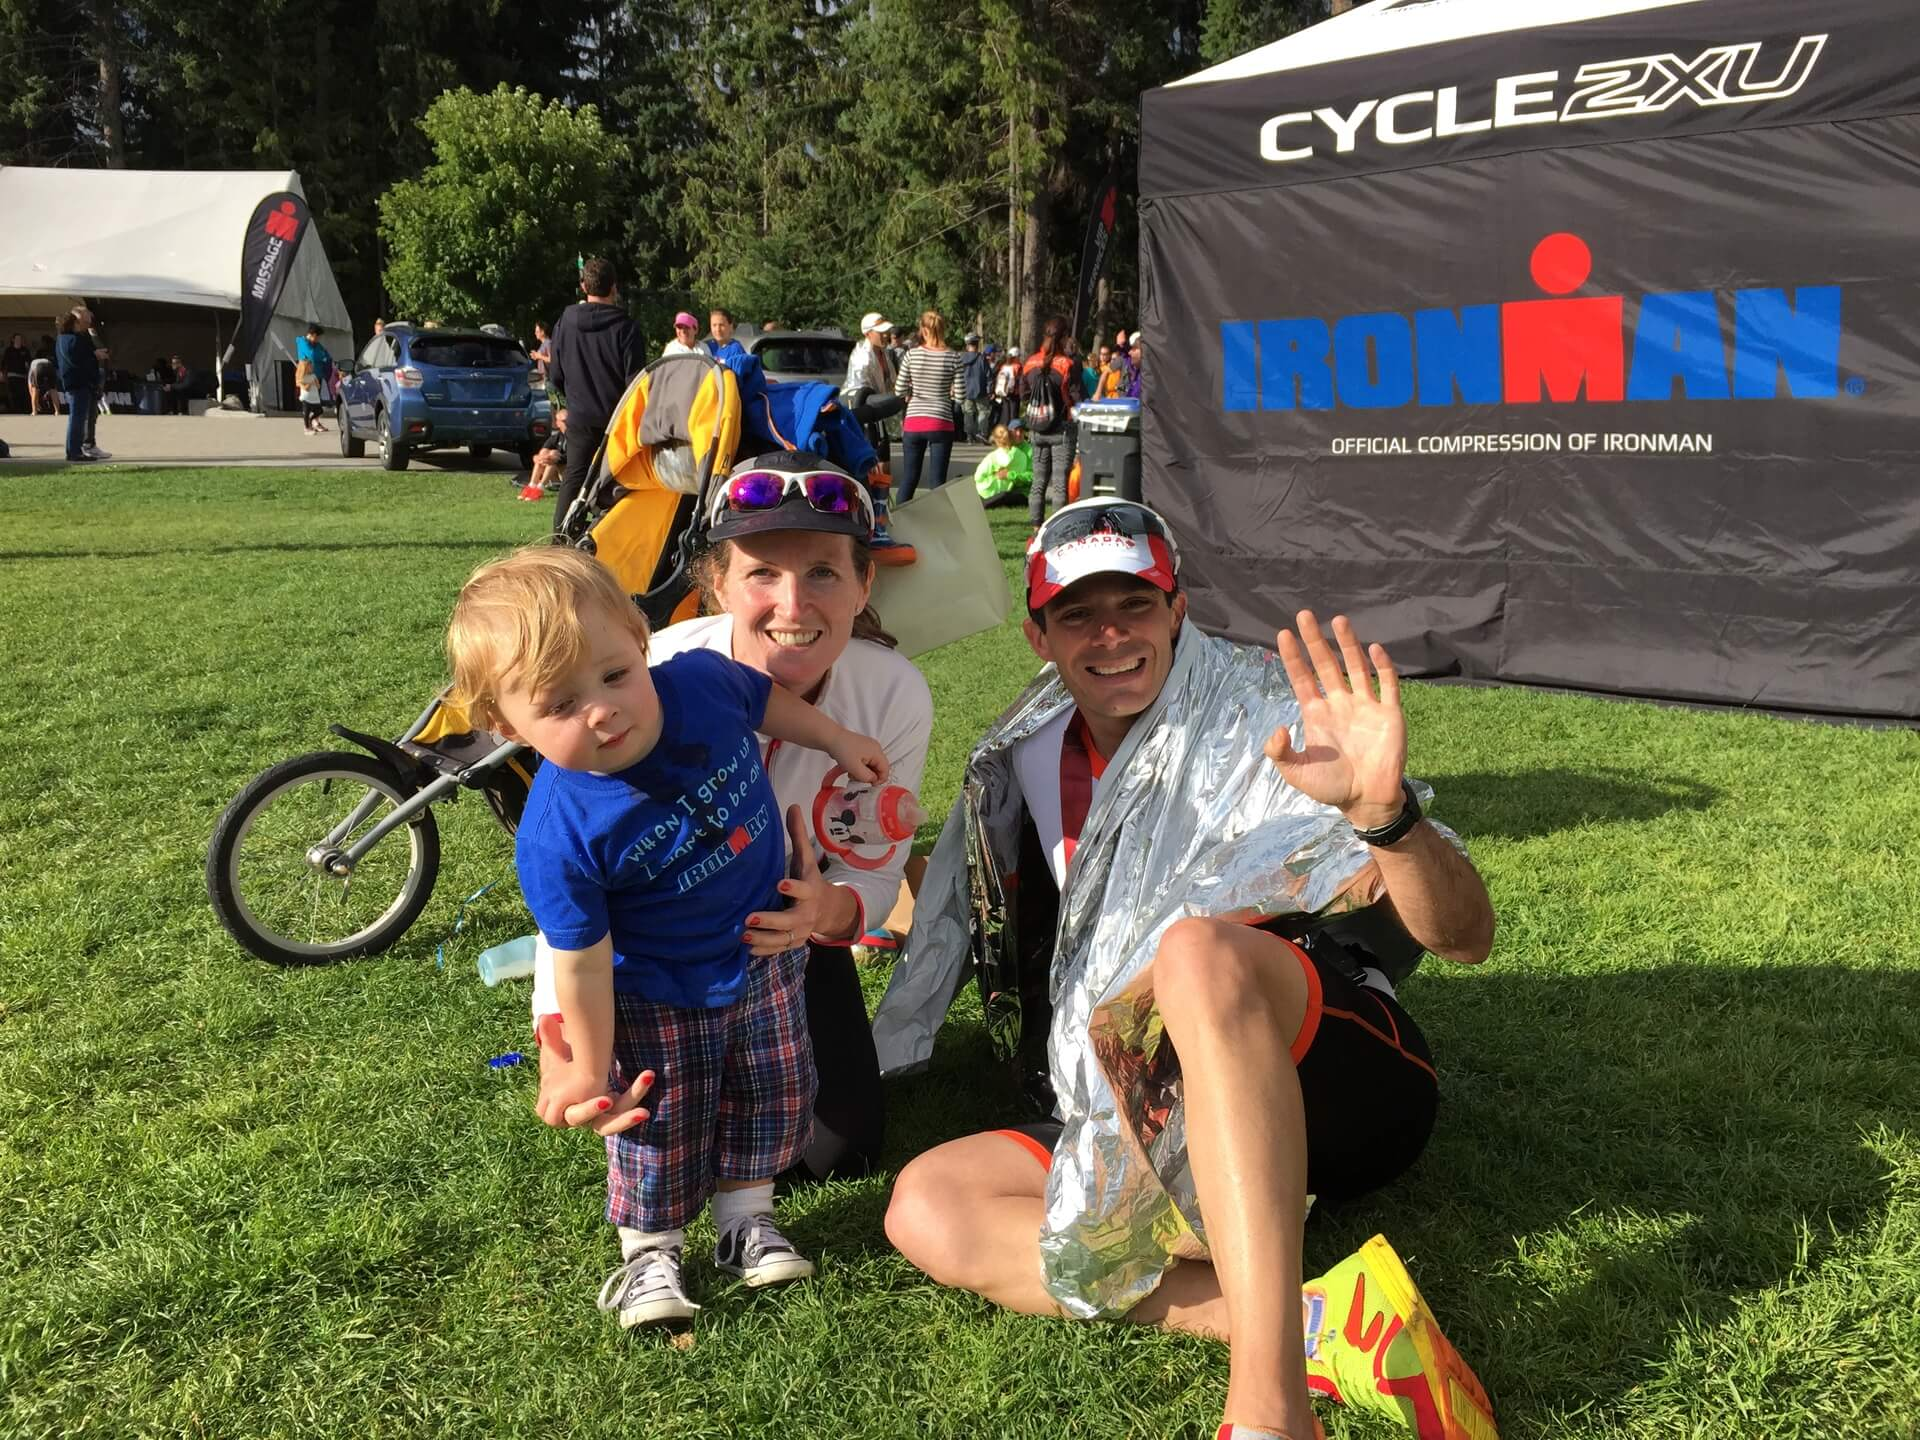 CEO Geoff, his wife and our Founder Caoimhe and their first son Alex at the finish of Ironman Canada in 2015. Geoff suffered a puncture and missed out on World Championship qualification